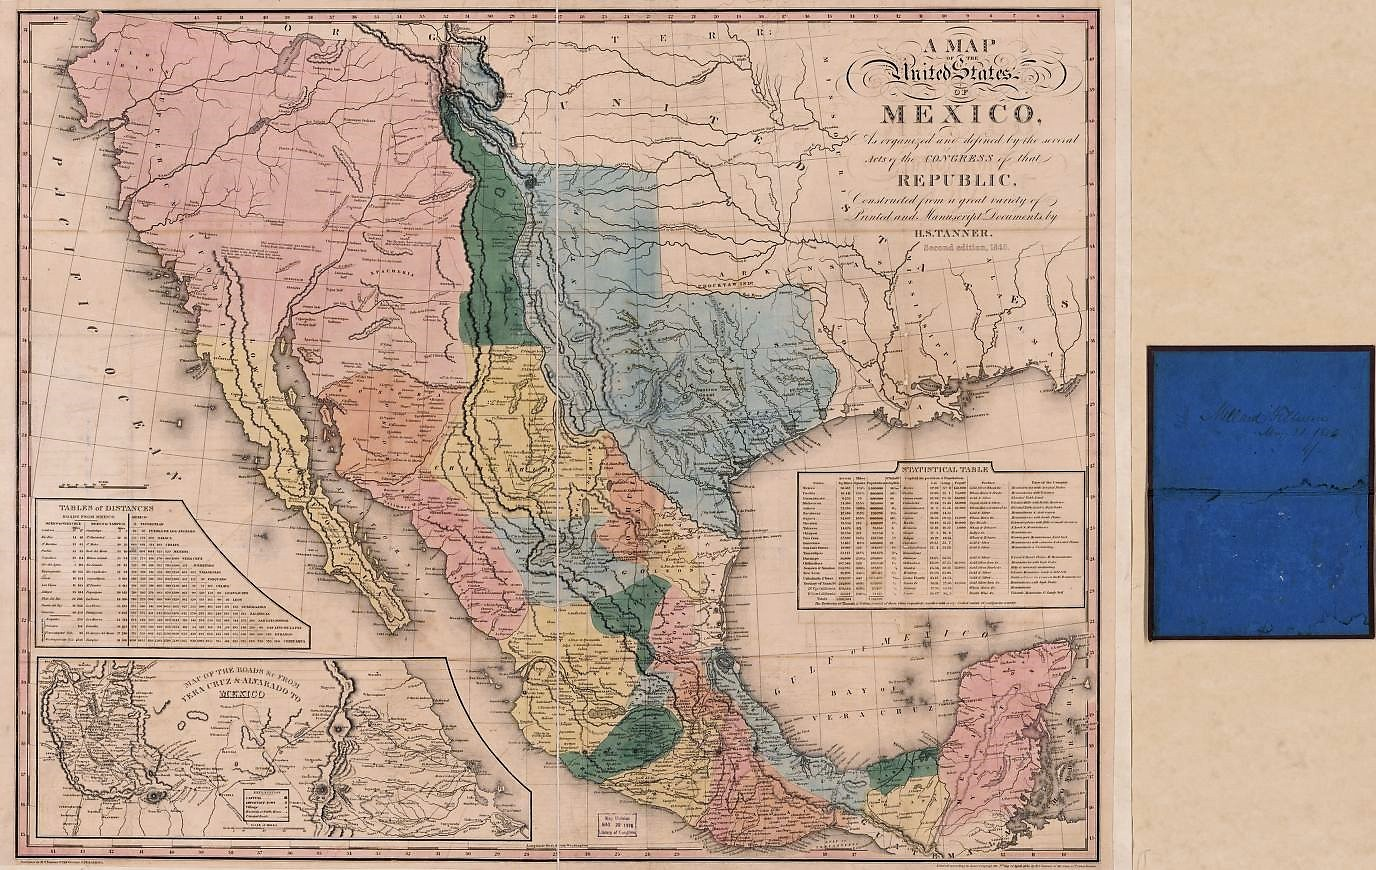 Part 4 Alabama in Mexico War - personal letter about the war